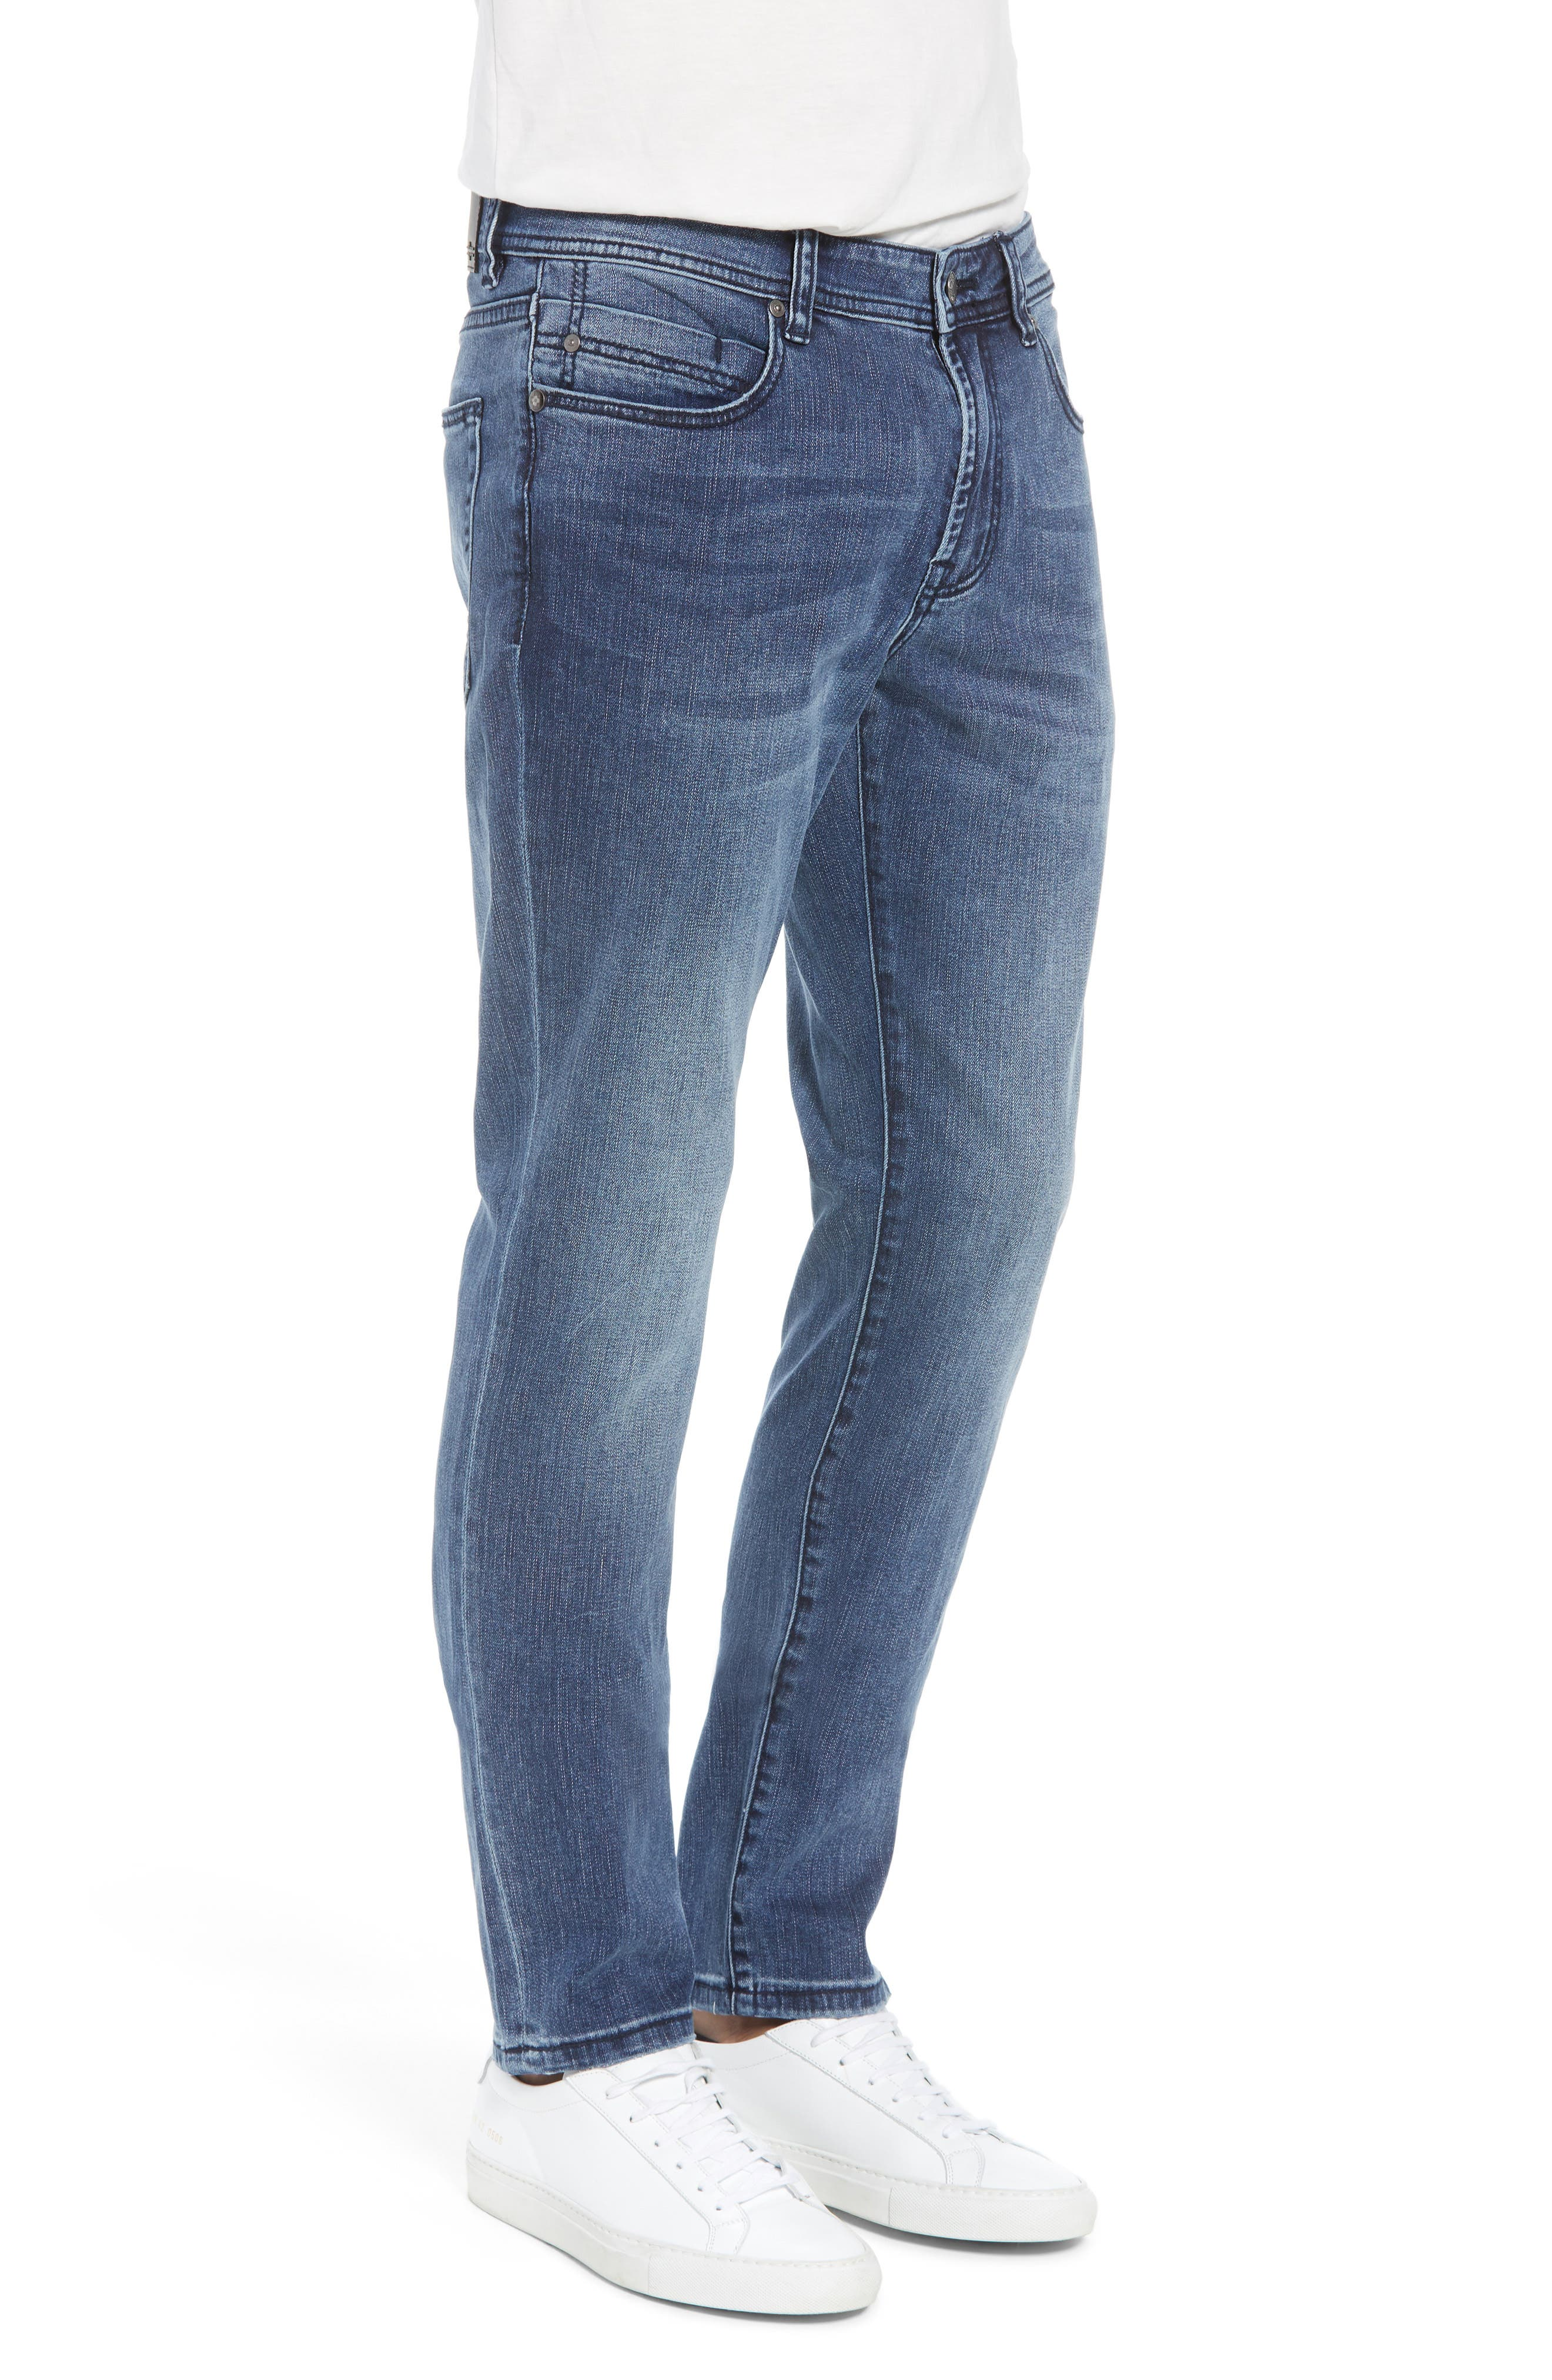 Jeans Co. Slim Straight Leg Jeans,                             Alternate thumbnail 3, color,                             403